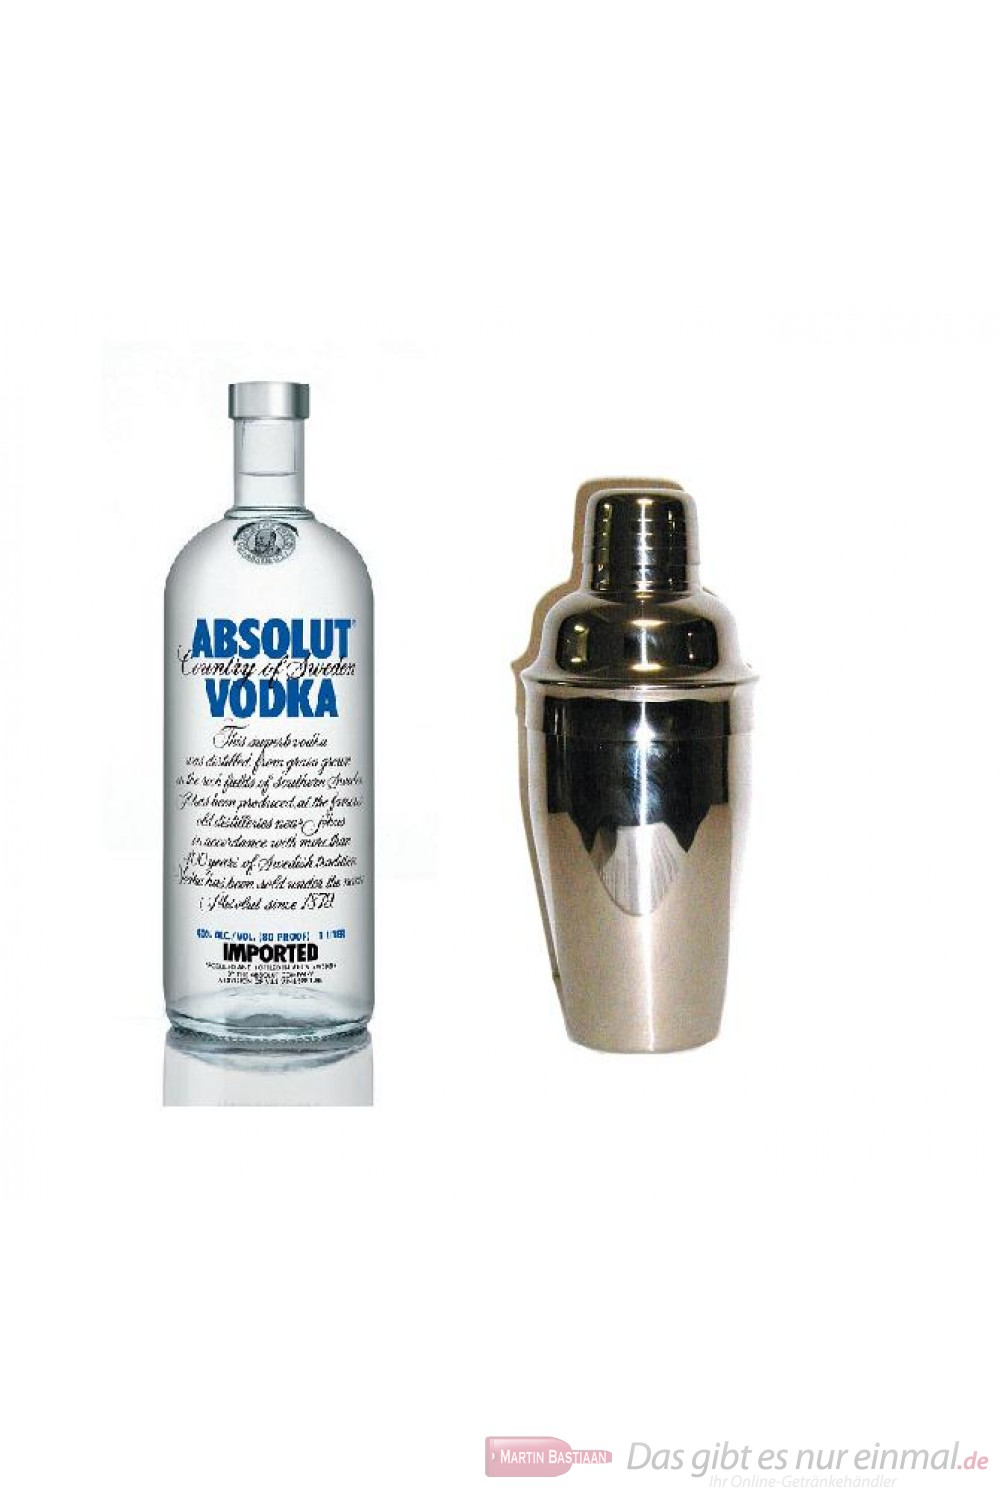 Absolut Wodka 40% 1,0l Vodka Flasche + Cocktailshaker